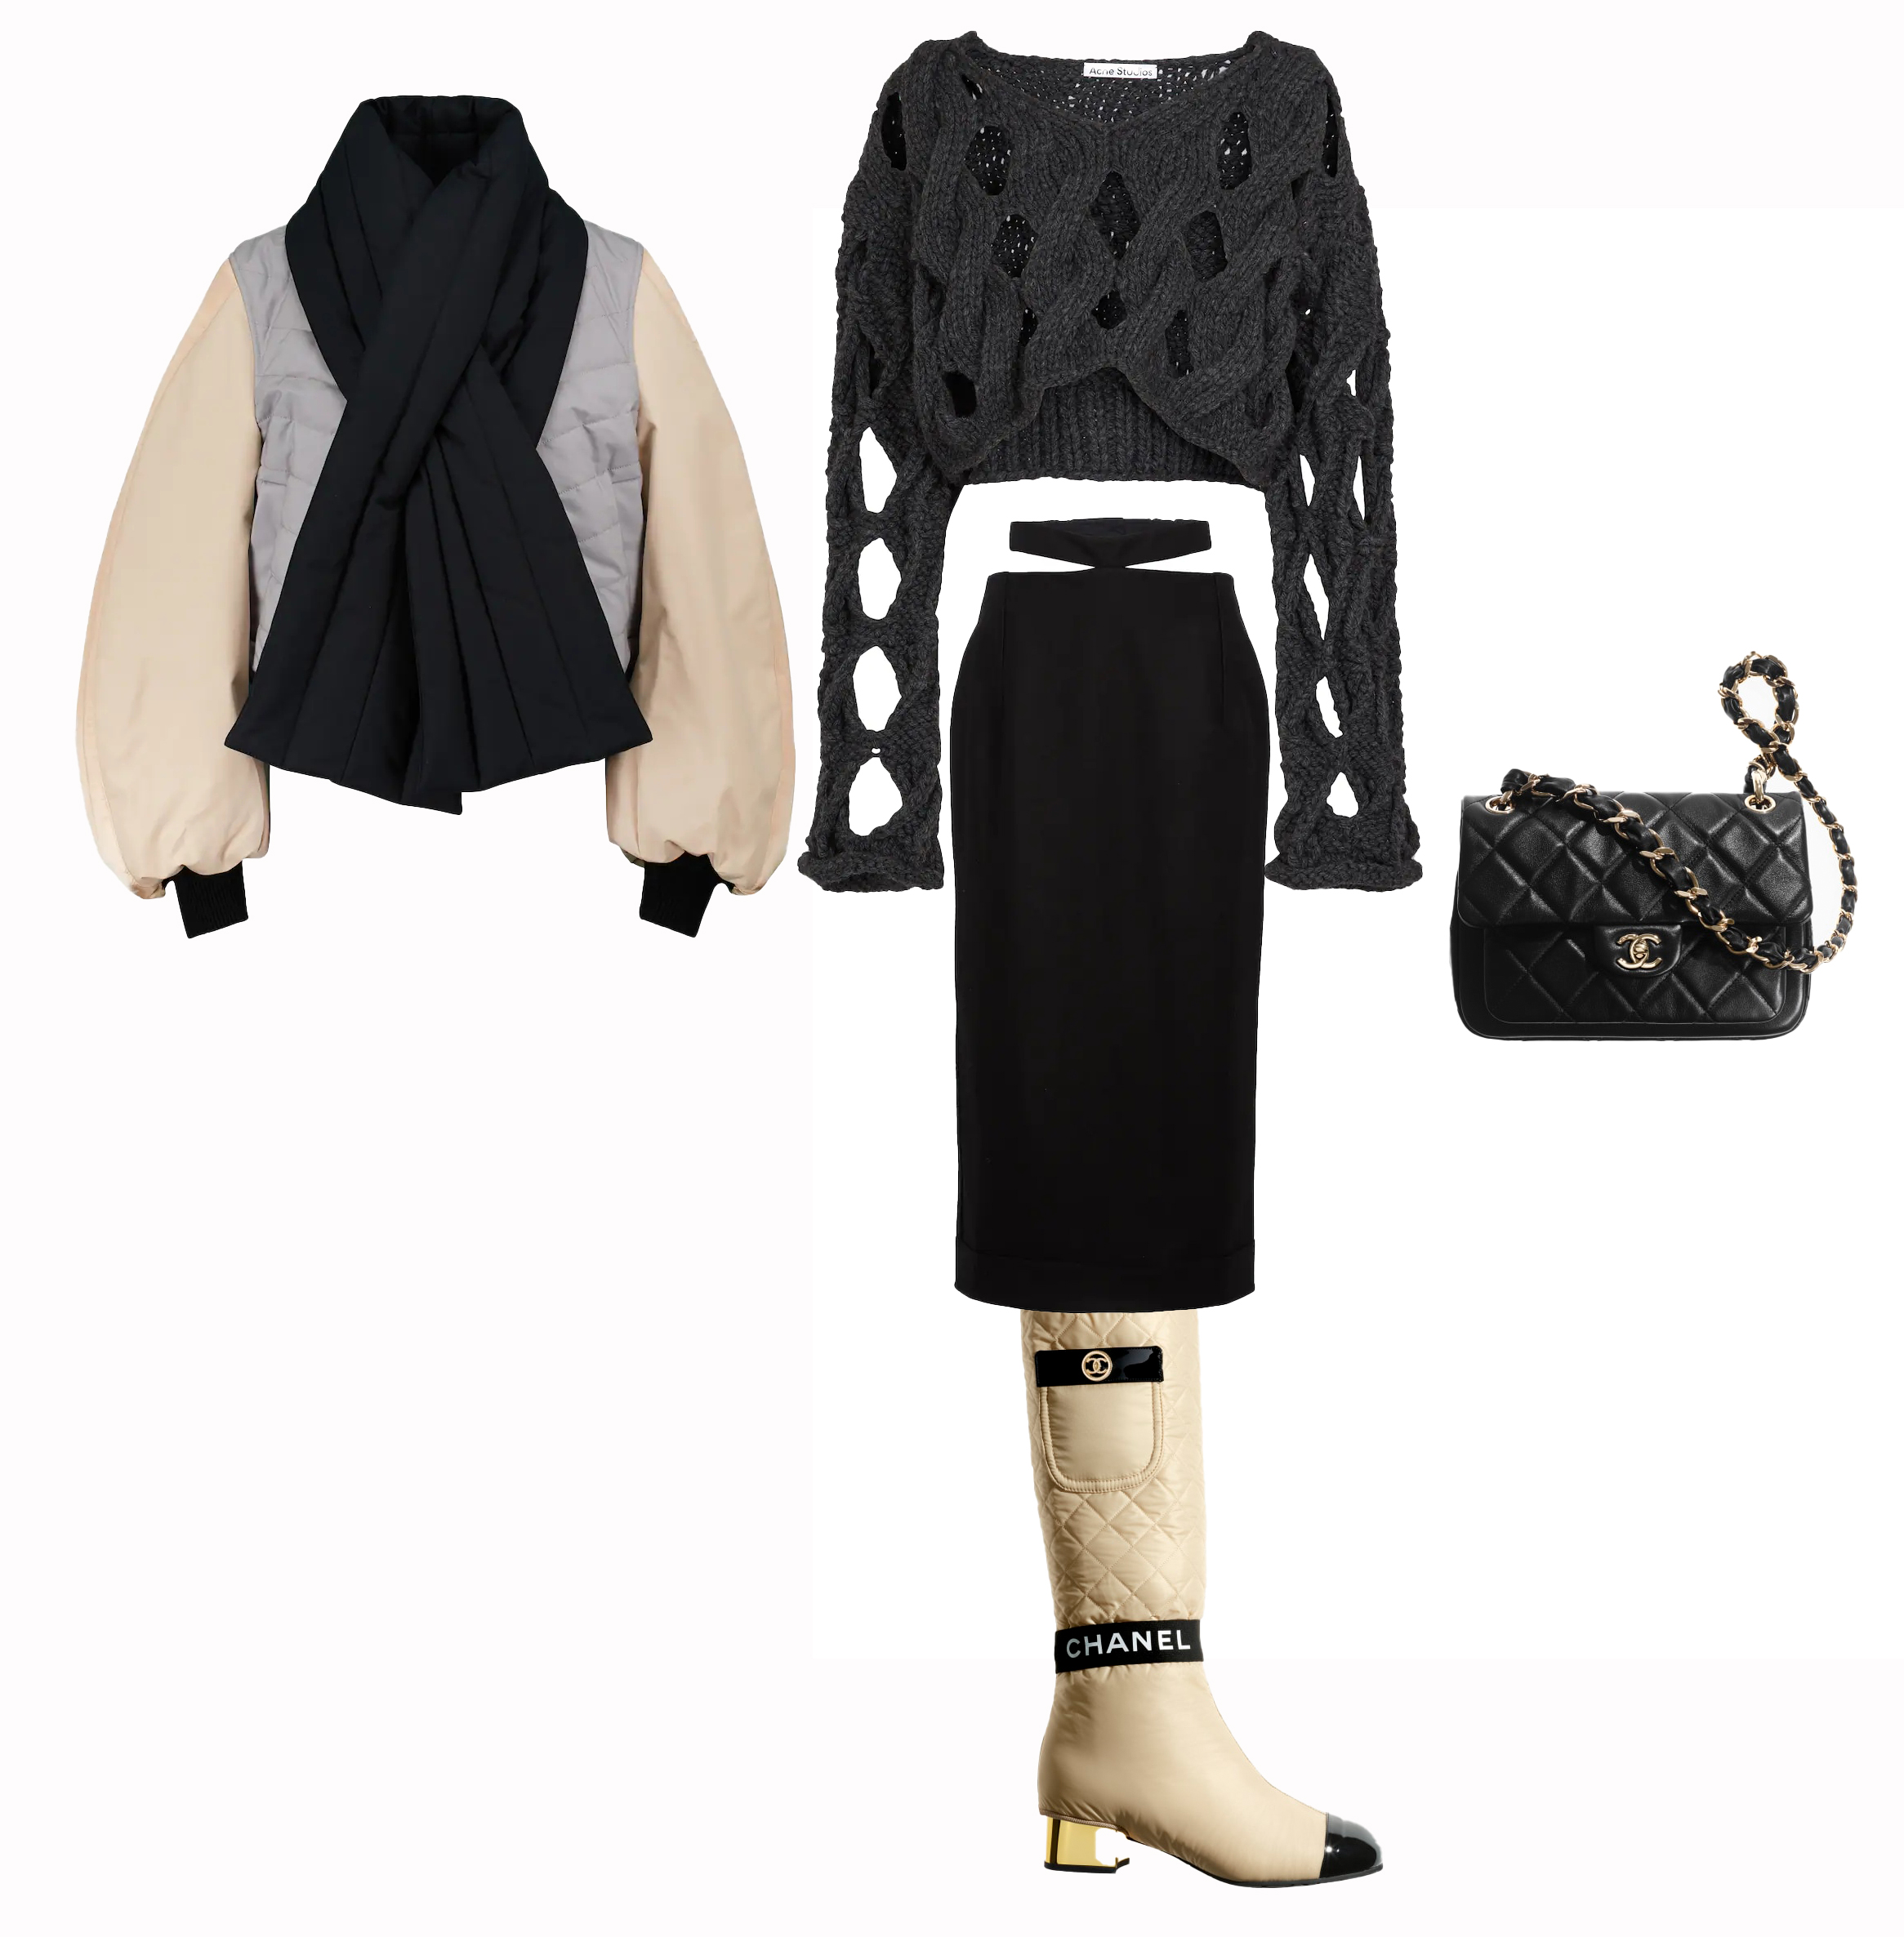 chanel-high-boots-fall-outfit